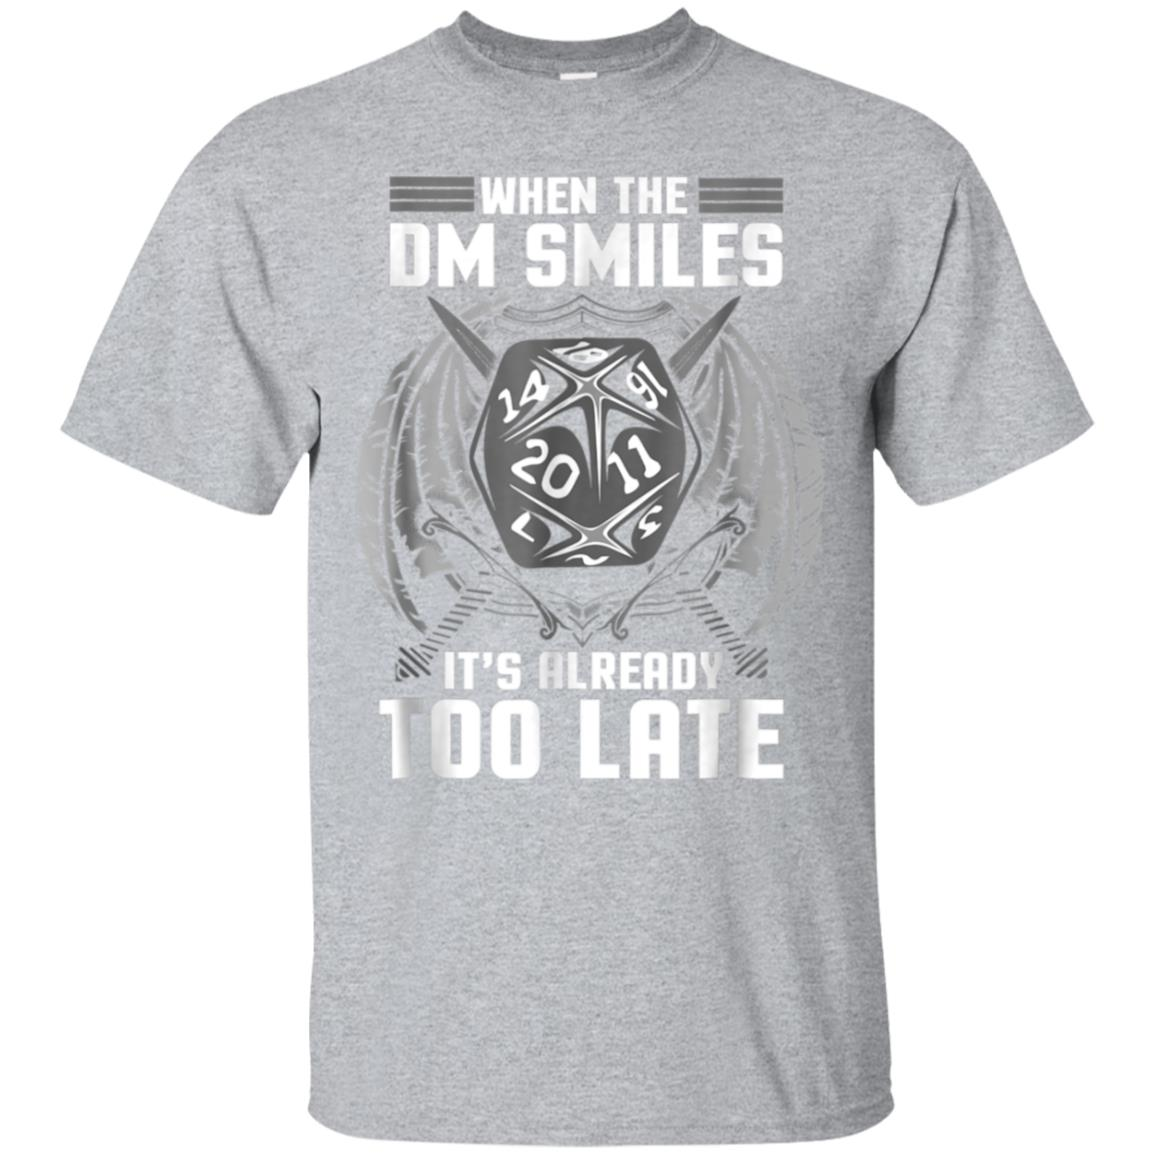 Funny When the DM Smiles, It's Already Too Late T-Shirt 99promocode